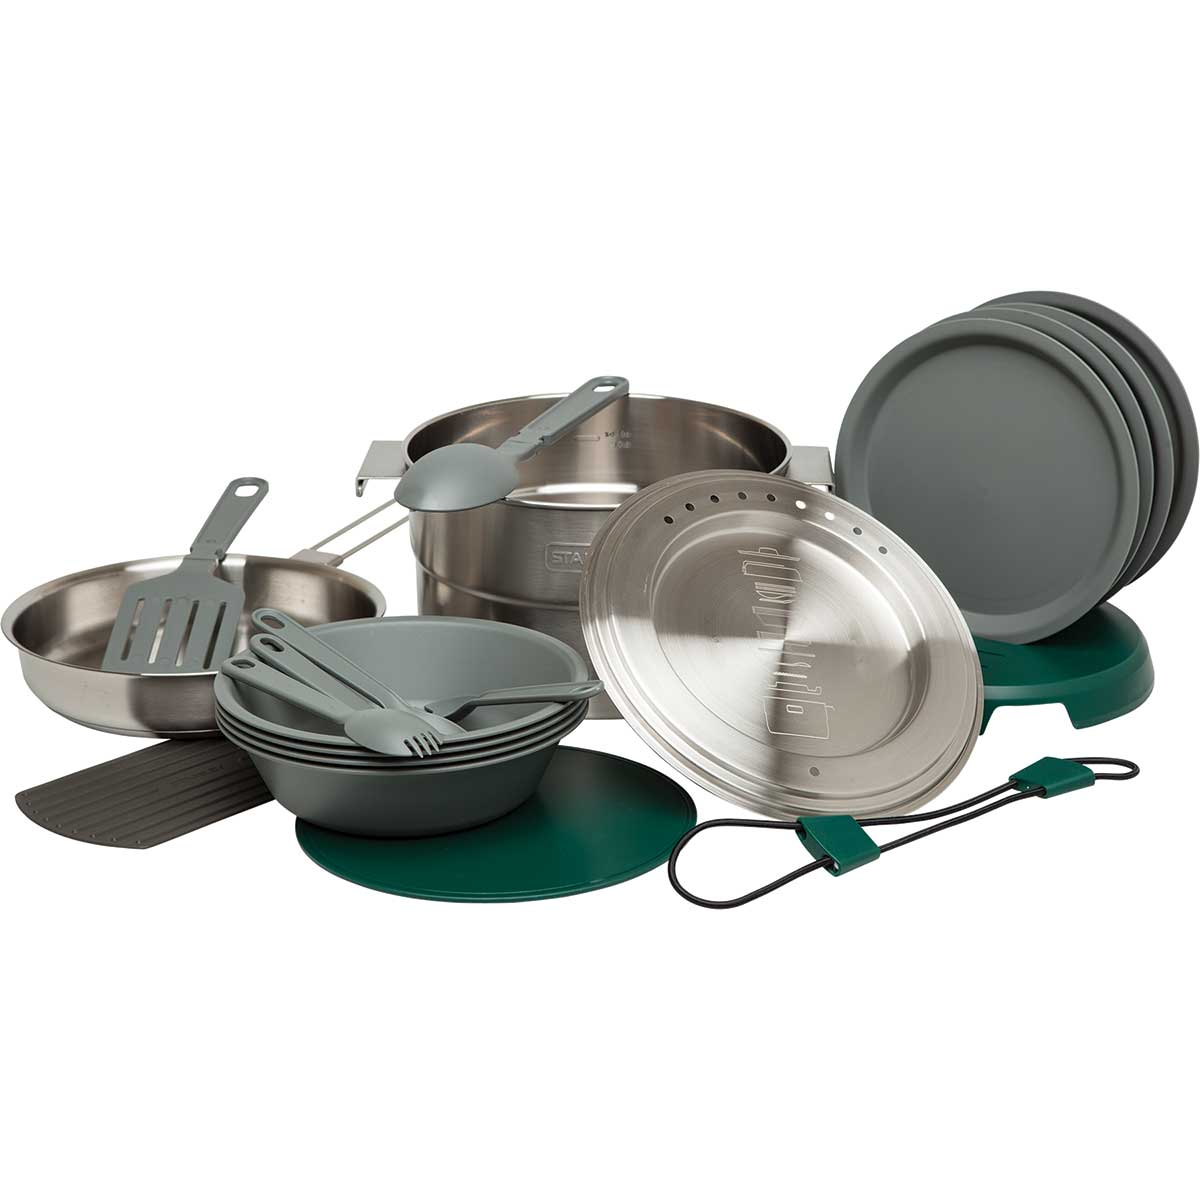 Stanley Adventure Full Kitchen Base Camp Cook Set